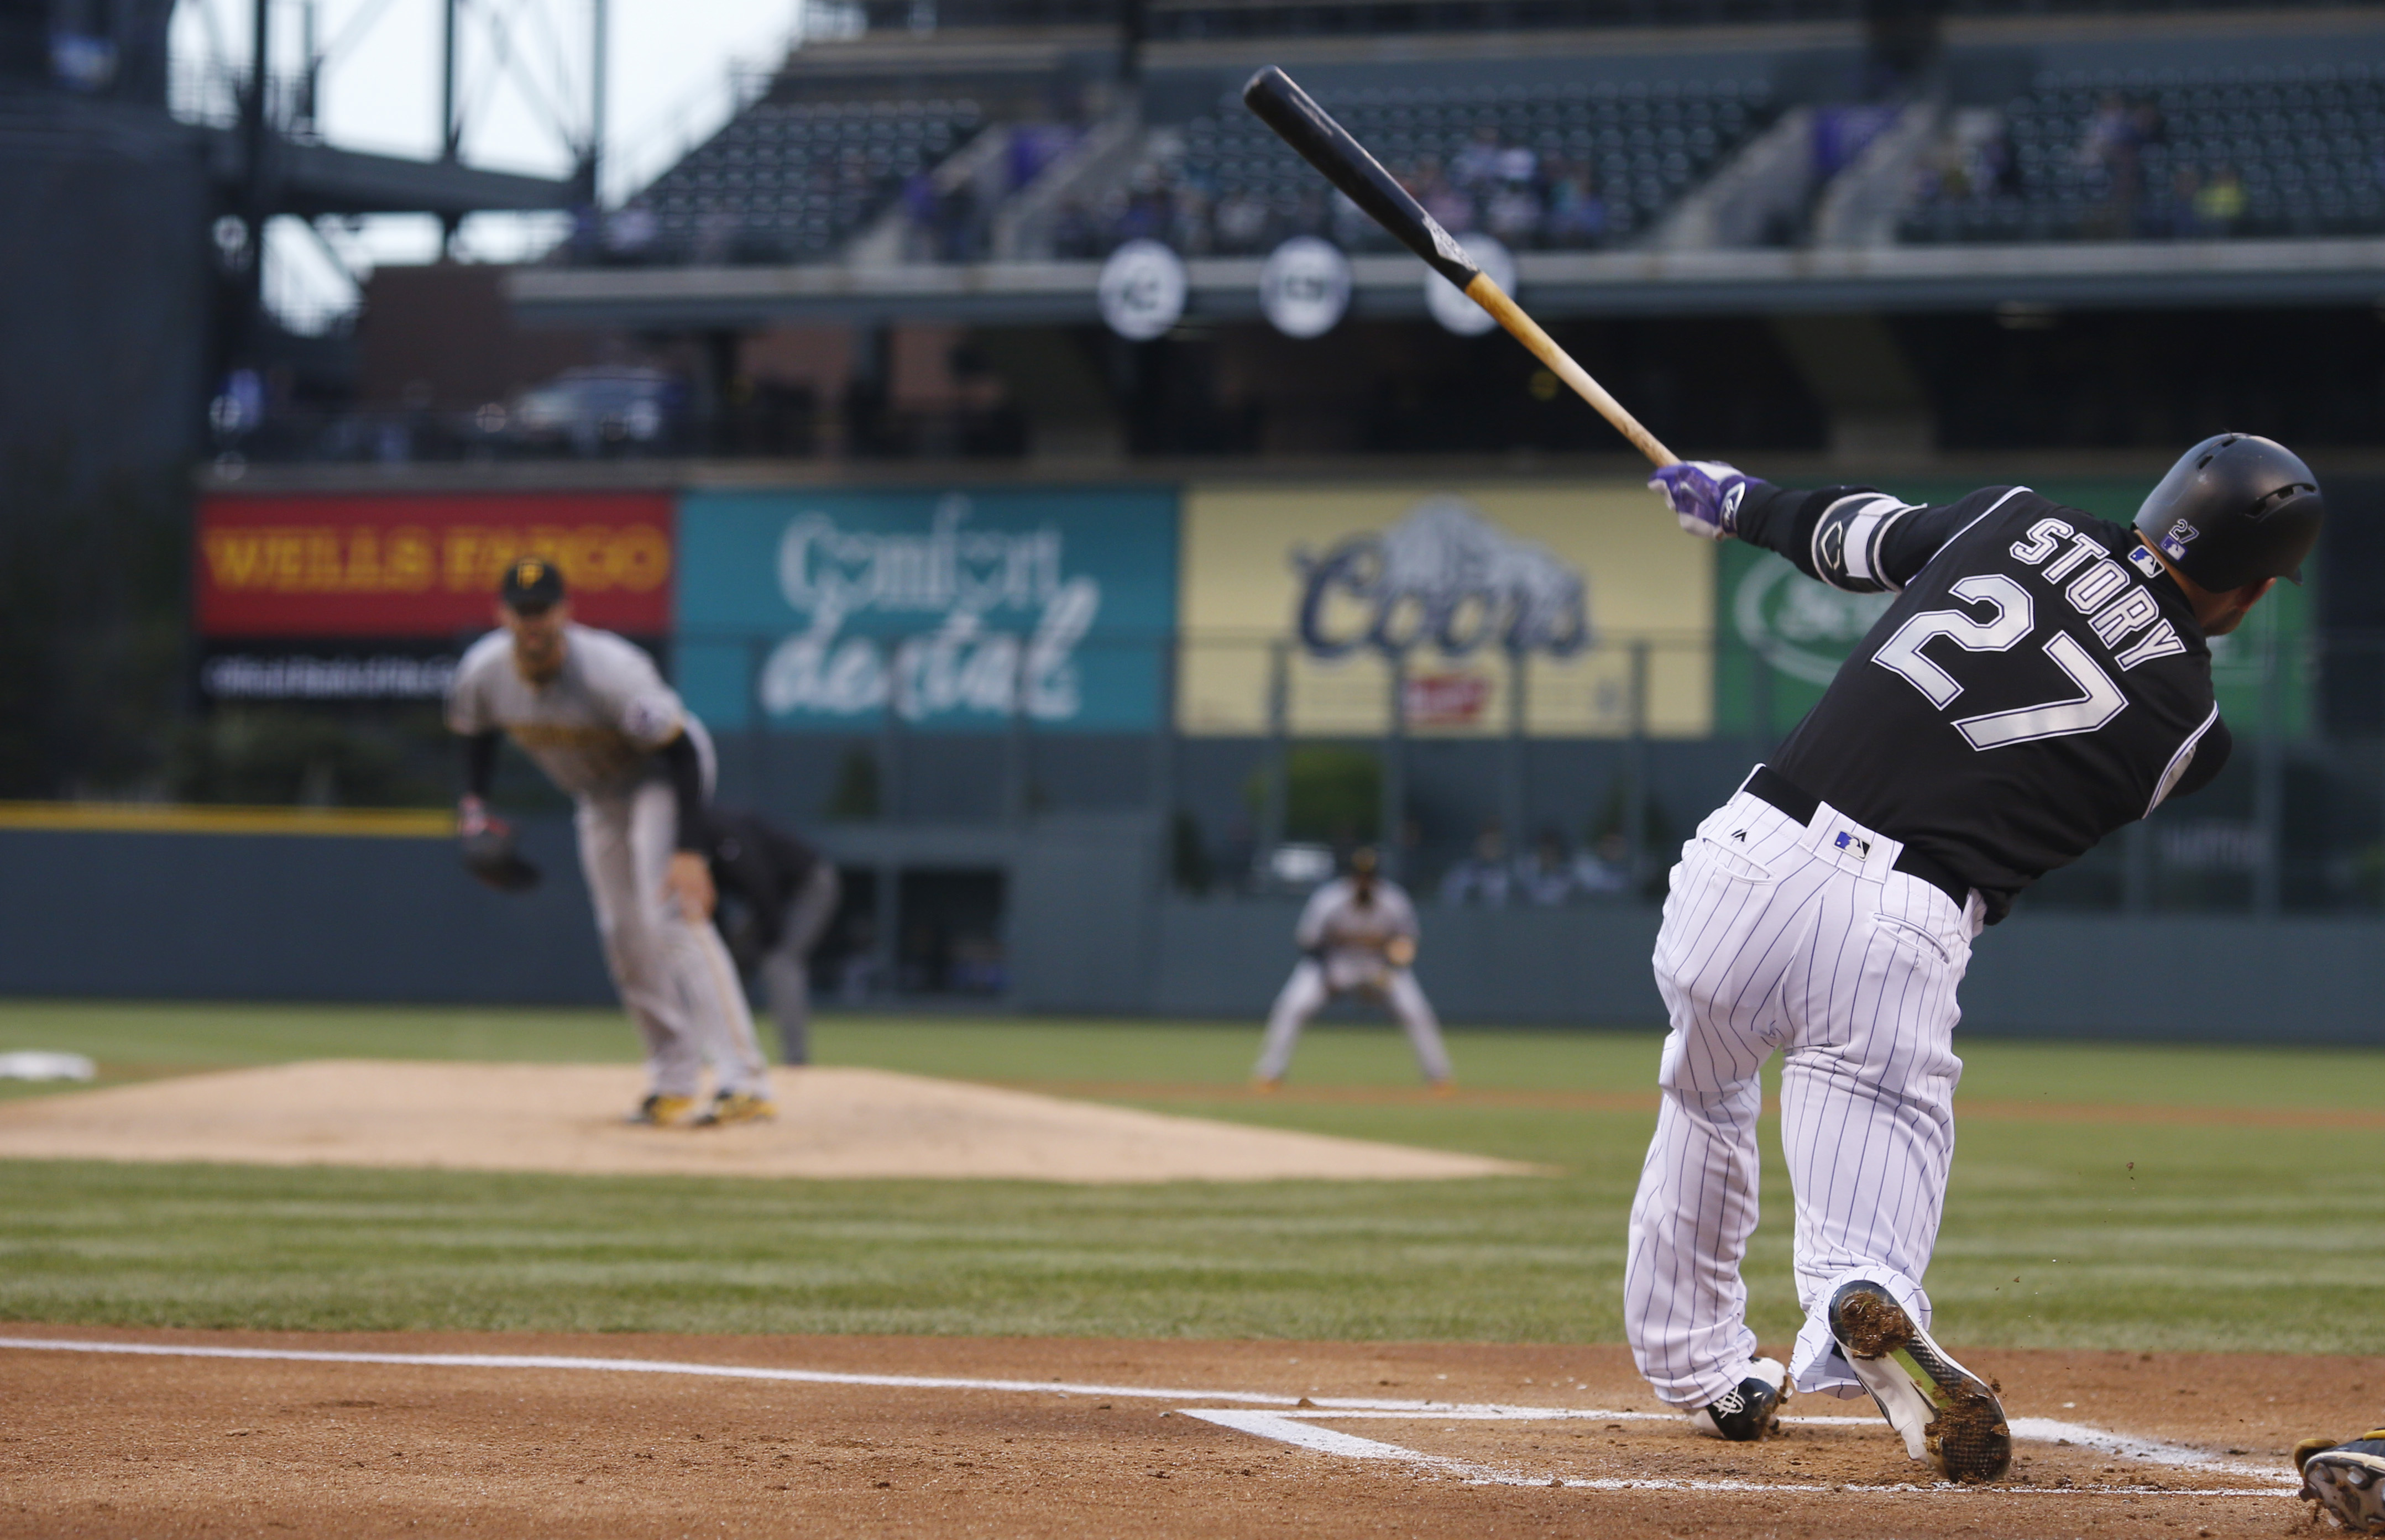 Colorado Rockies' Trevor Story, front, strikes out on a pitch from Pittsburgh Pirates' Jonathon Niese during the first inning of a baseball game Wednesday, April 27, 2016, in Denver. (AP Photo/David Zalubowski)